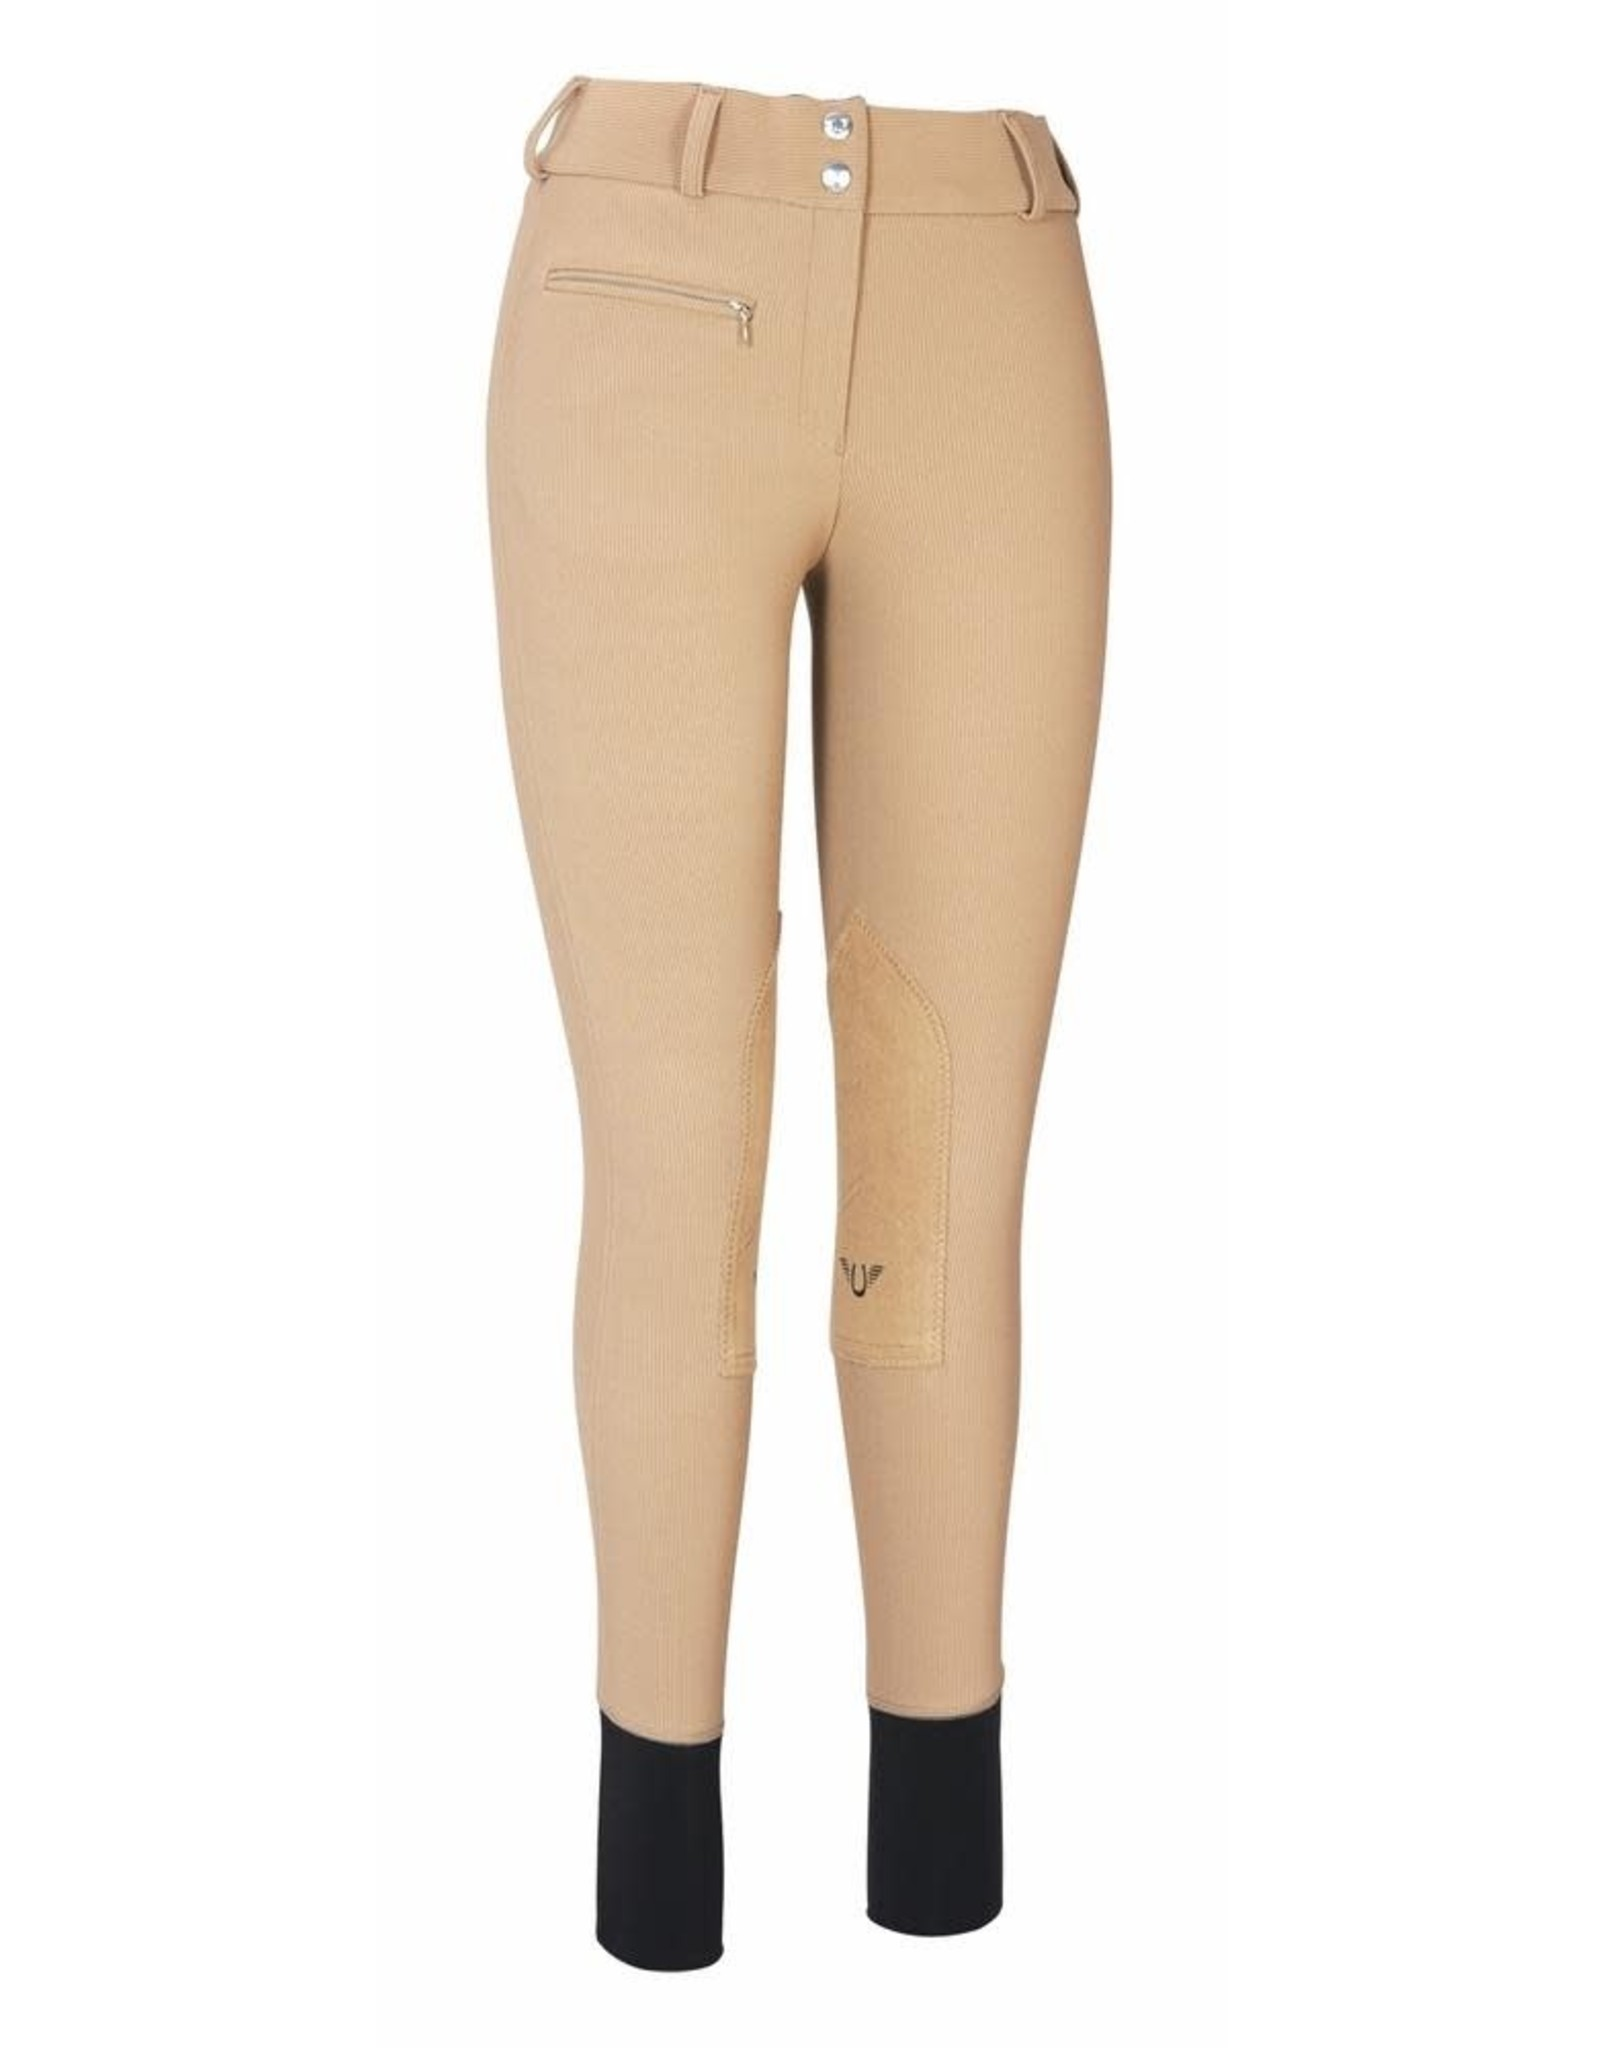 Tuffrider Ladies Ribb Lowrise Wide Waistband Knee Patch Breeches